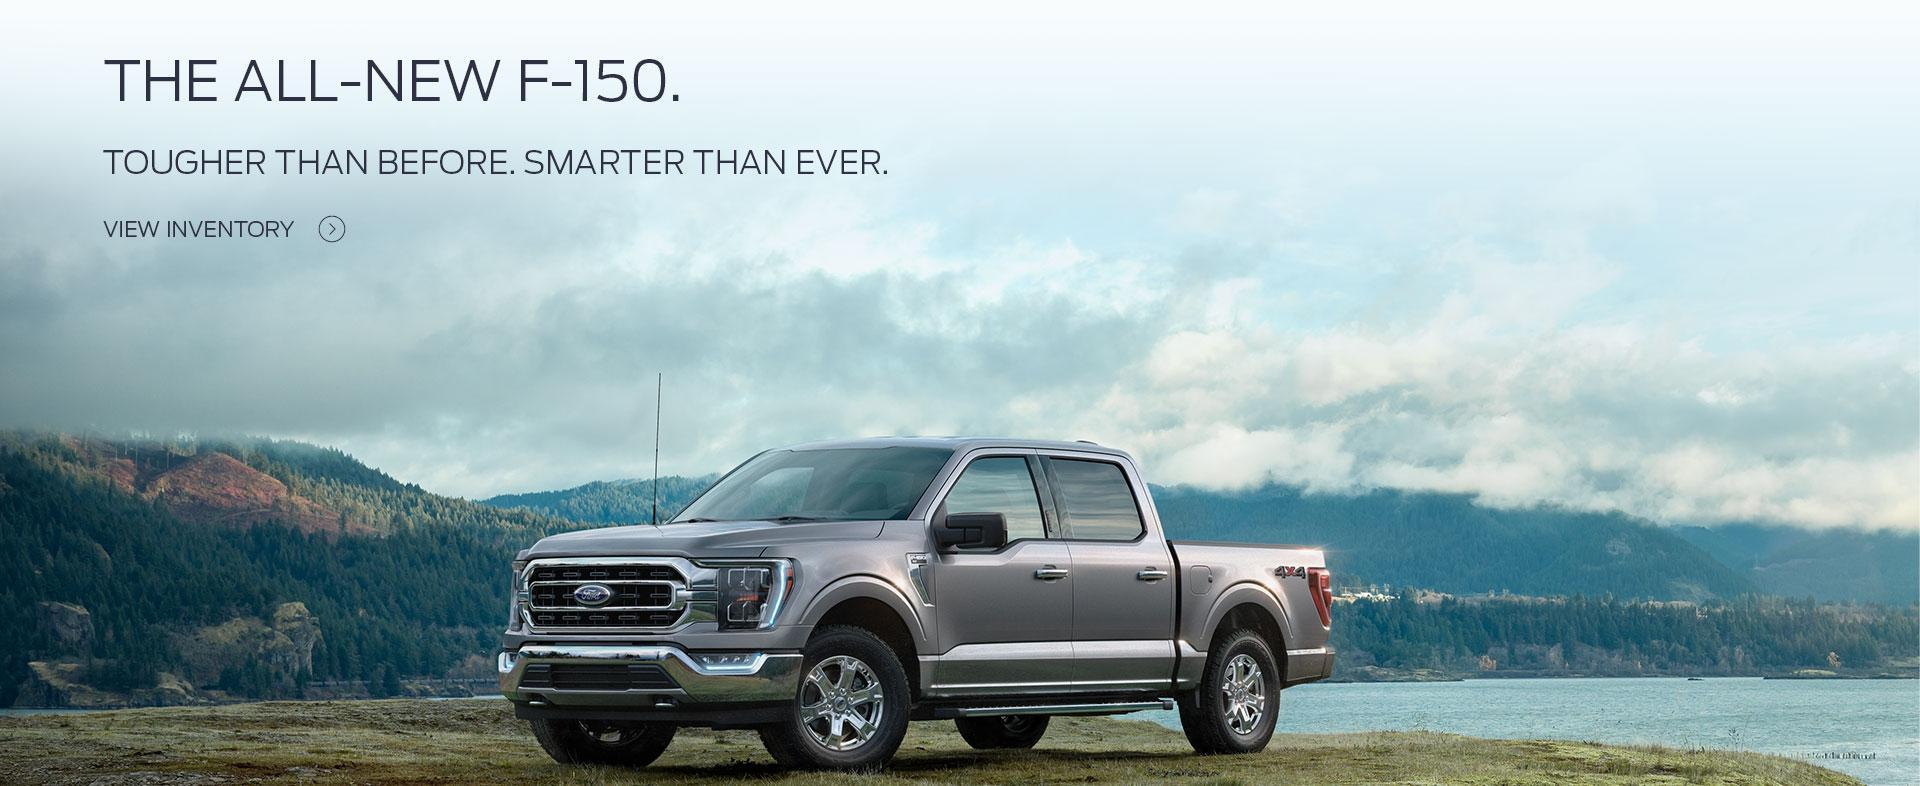 2021 F-150 | Plaza Ford